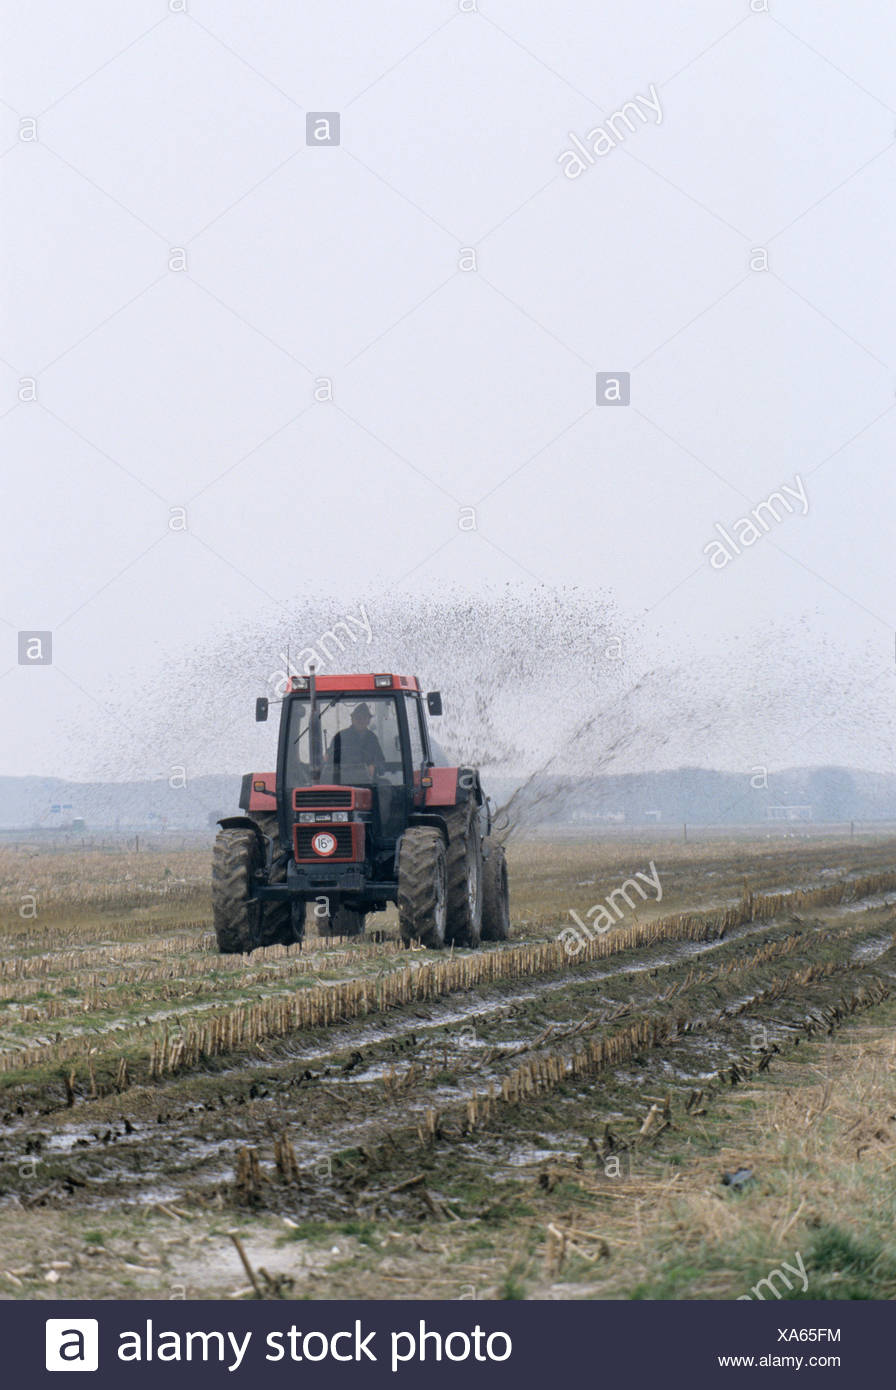 Farmer spreading manure on a field, Netherlands, Europe Stock Photo